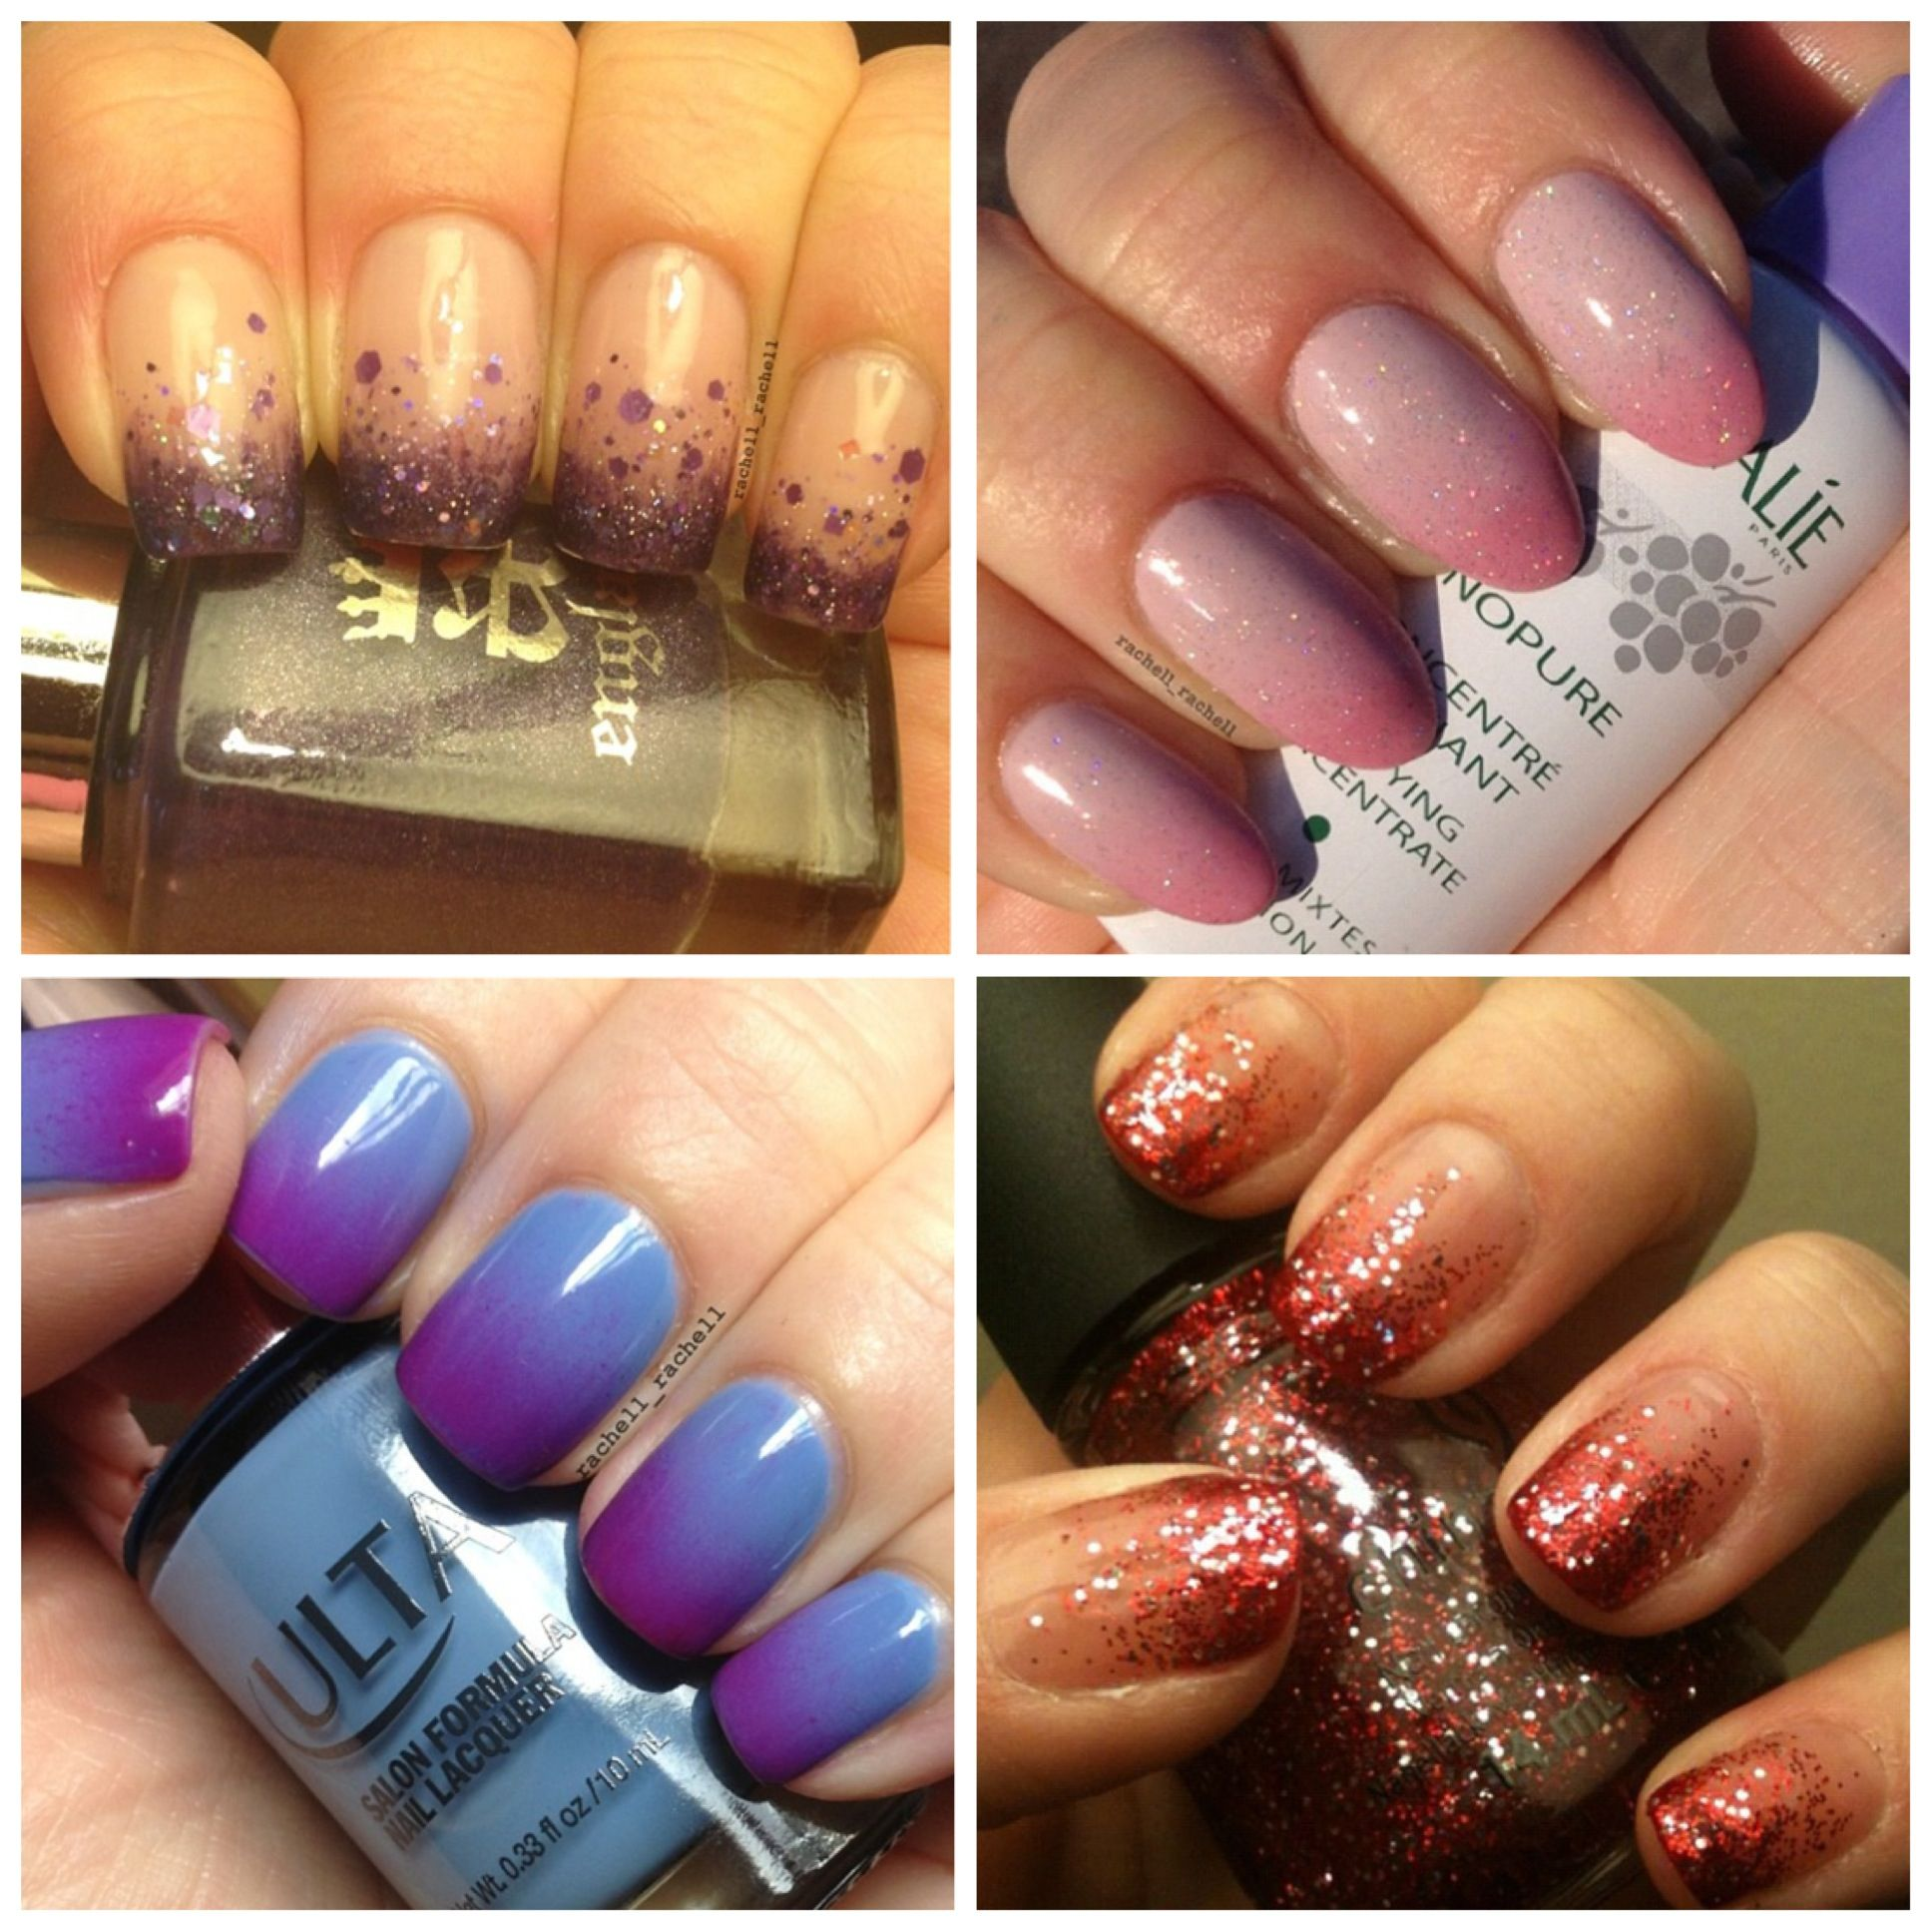 Ombré Nails Done At Black Label Salon And Spa!